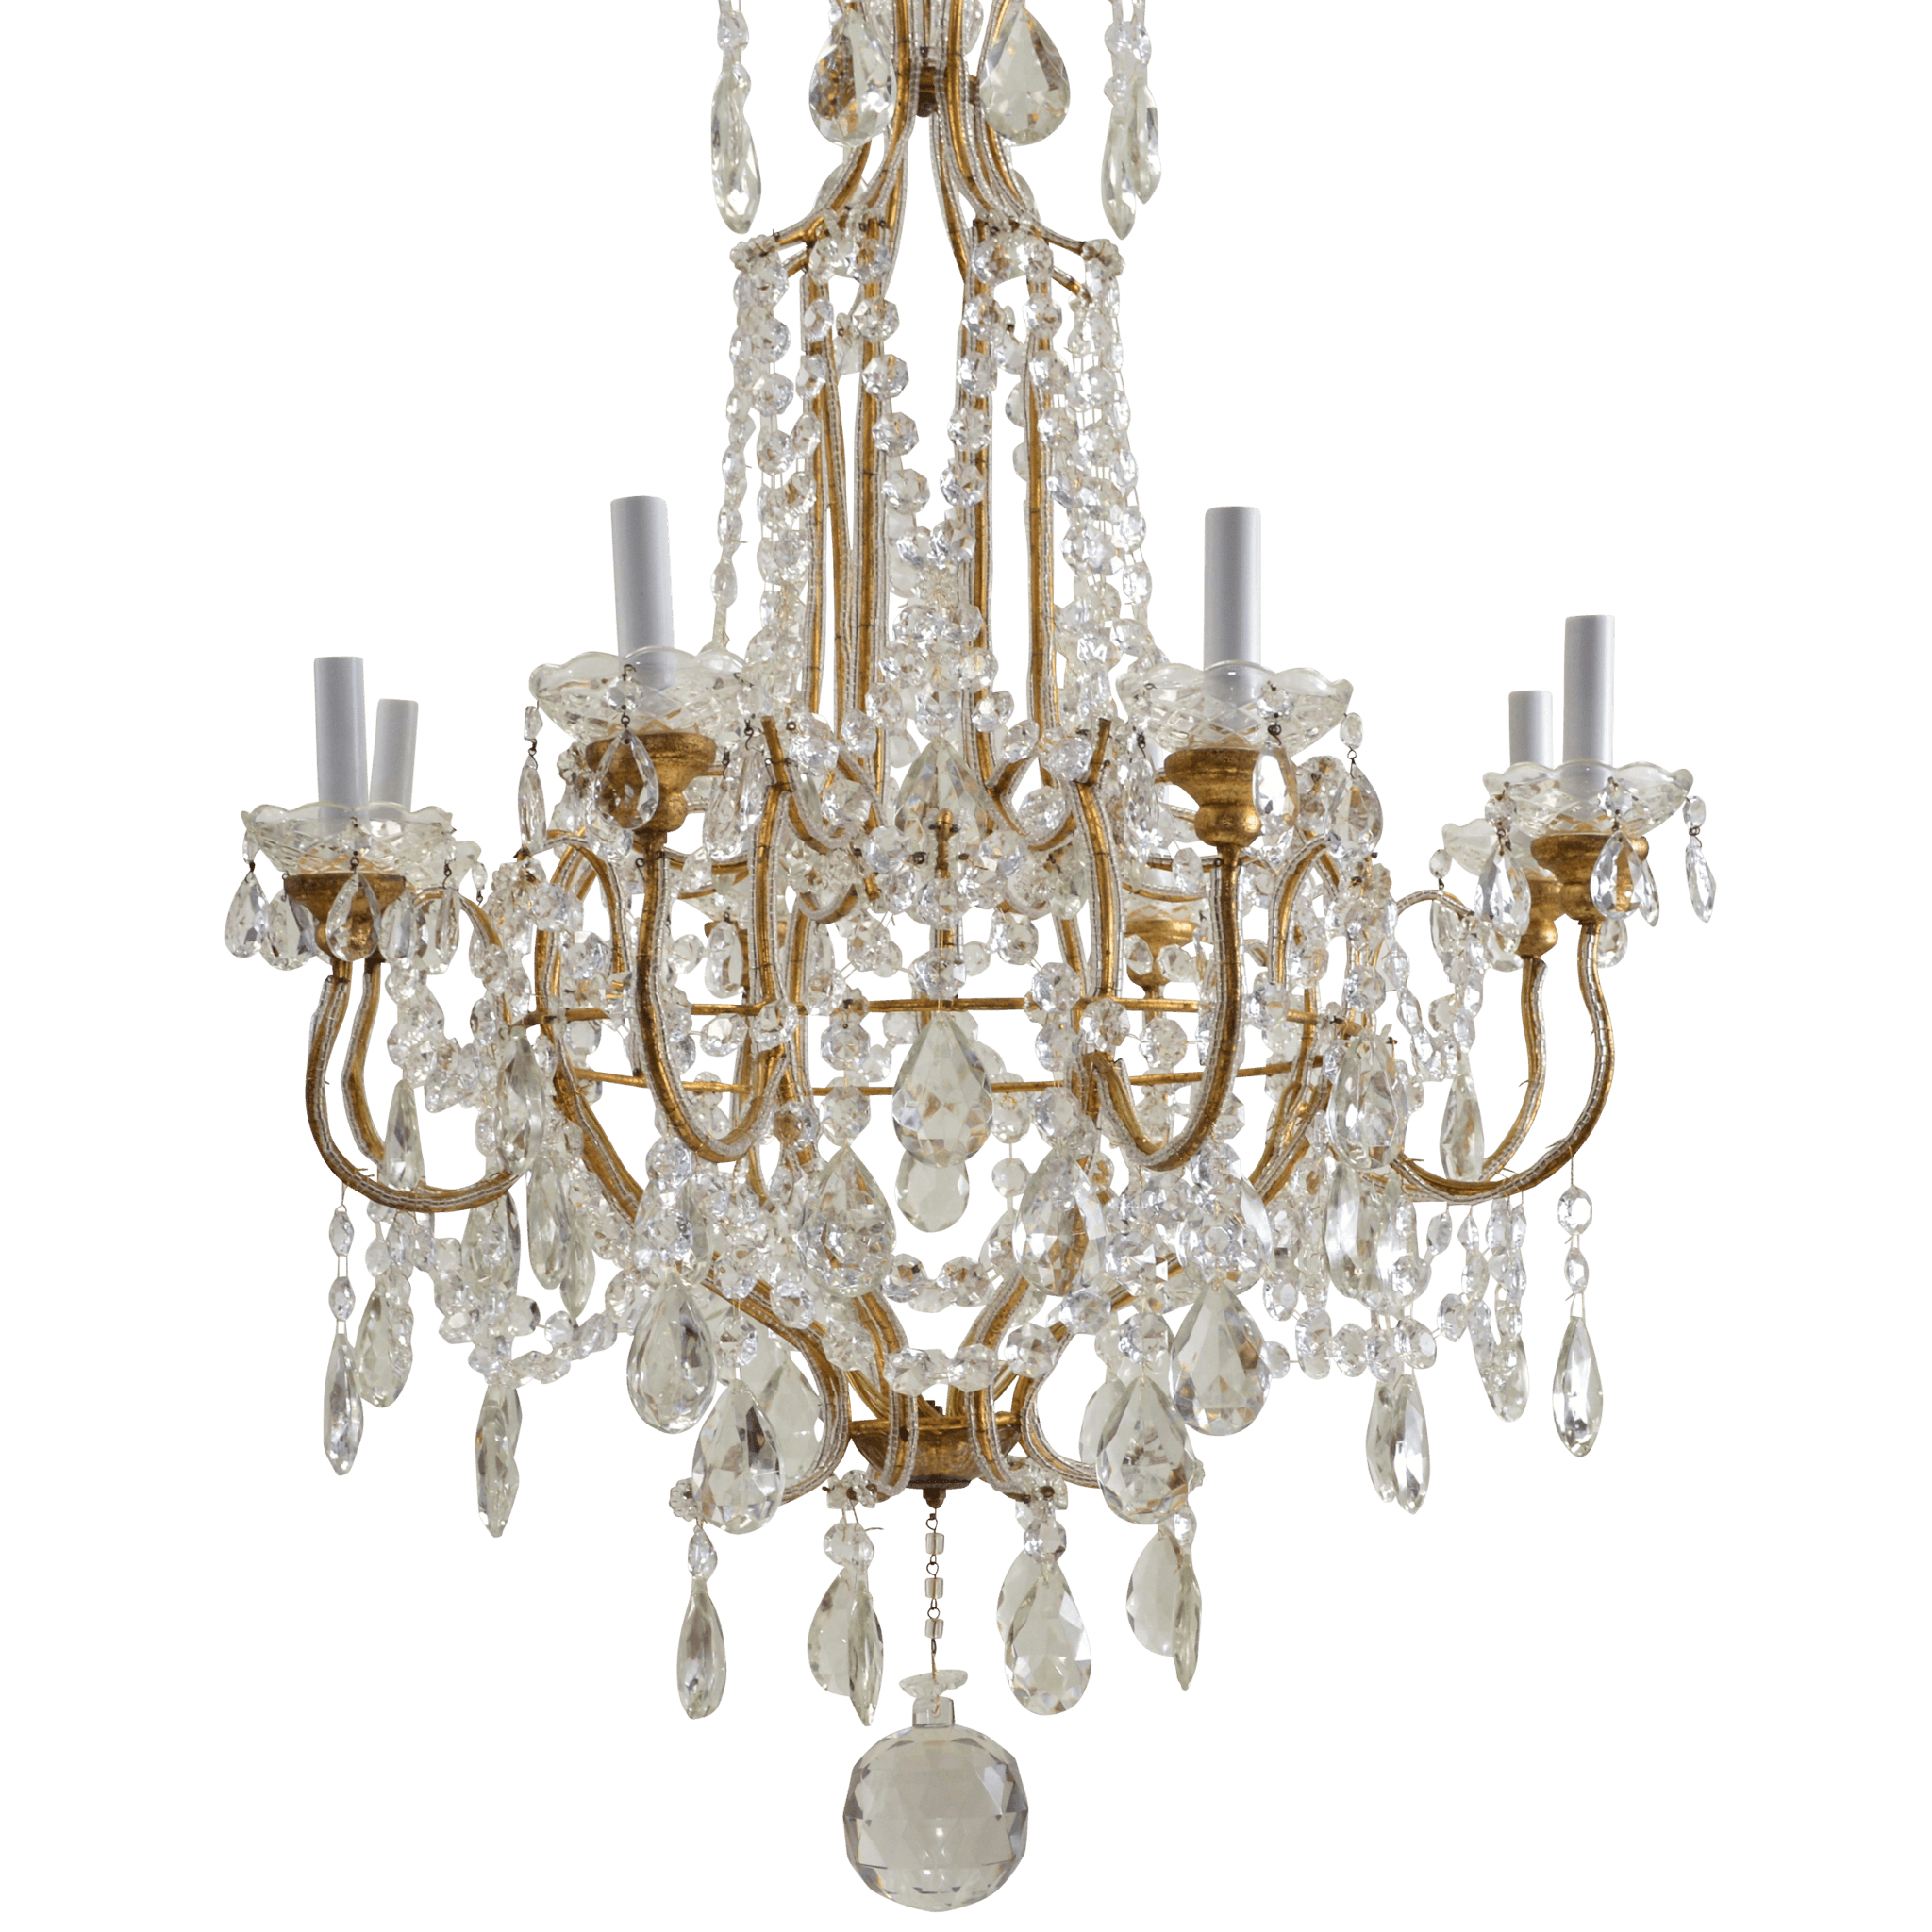 Crystal Vintage Chandelier transparent PNG StickPNG